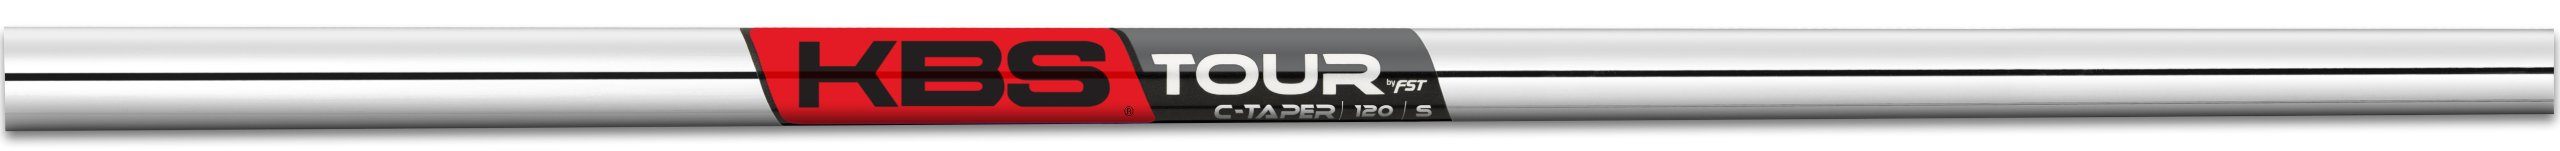 True Temper Men's C-Taper S Golf Club Shaft, 120gm, Steel, Stiff, 4-PW